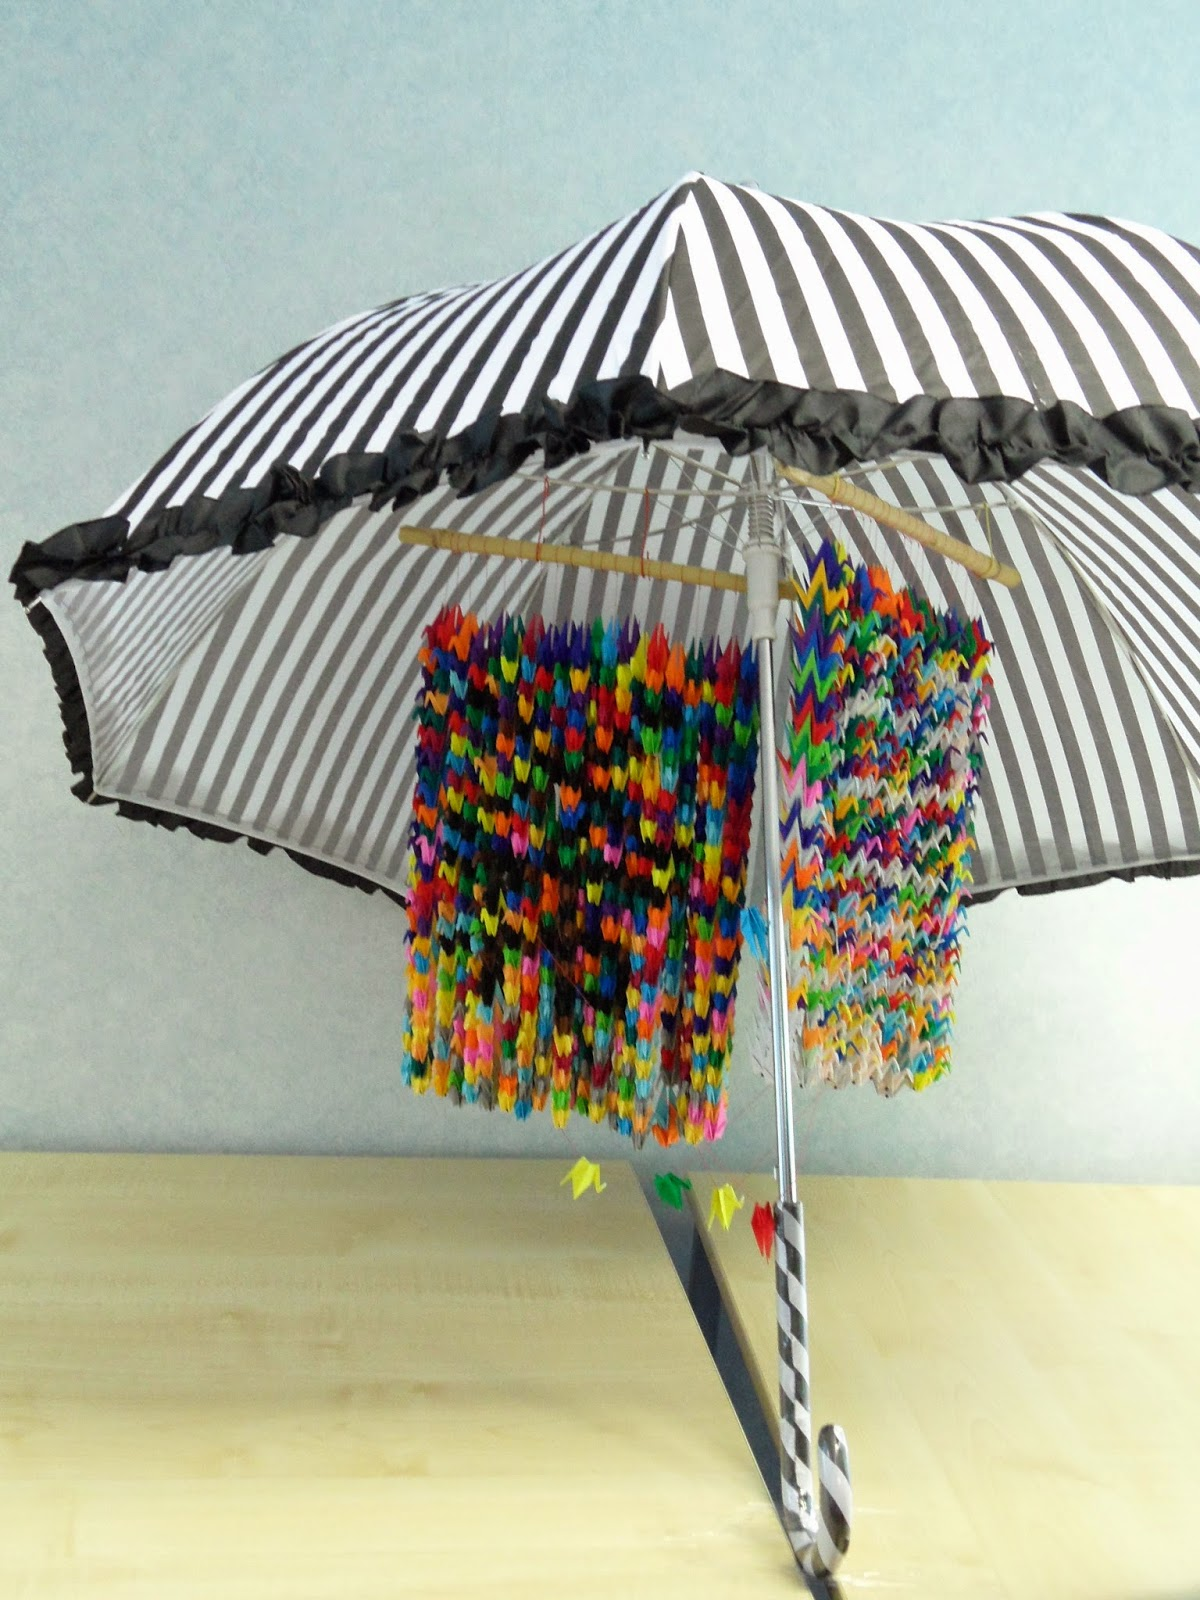 Senbazuru 1000 origami cranes umbrella hope kibo